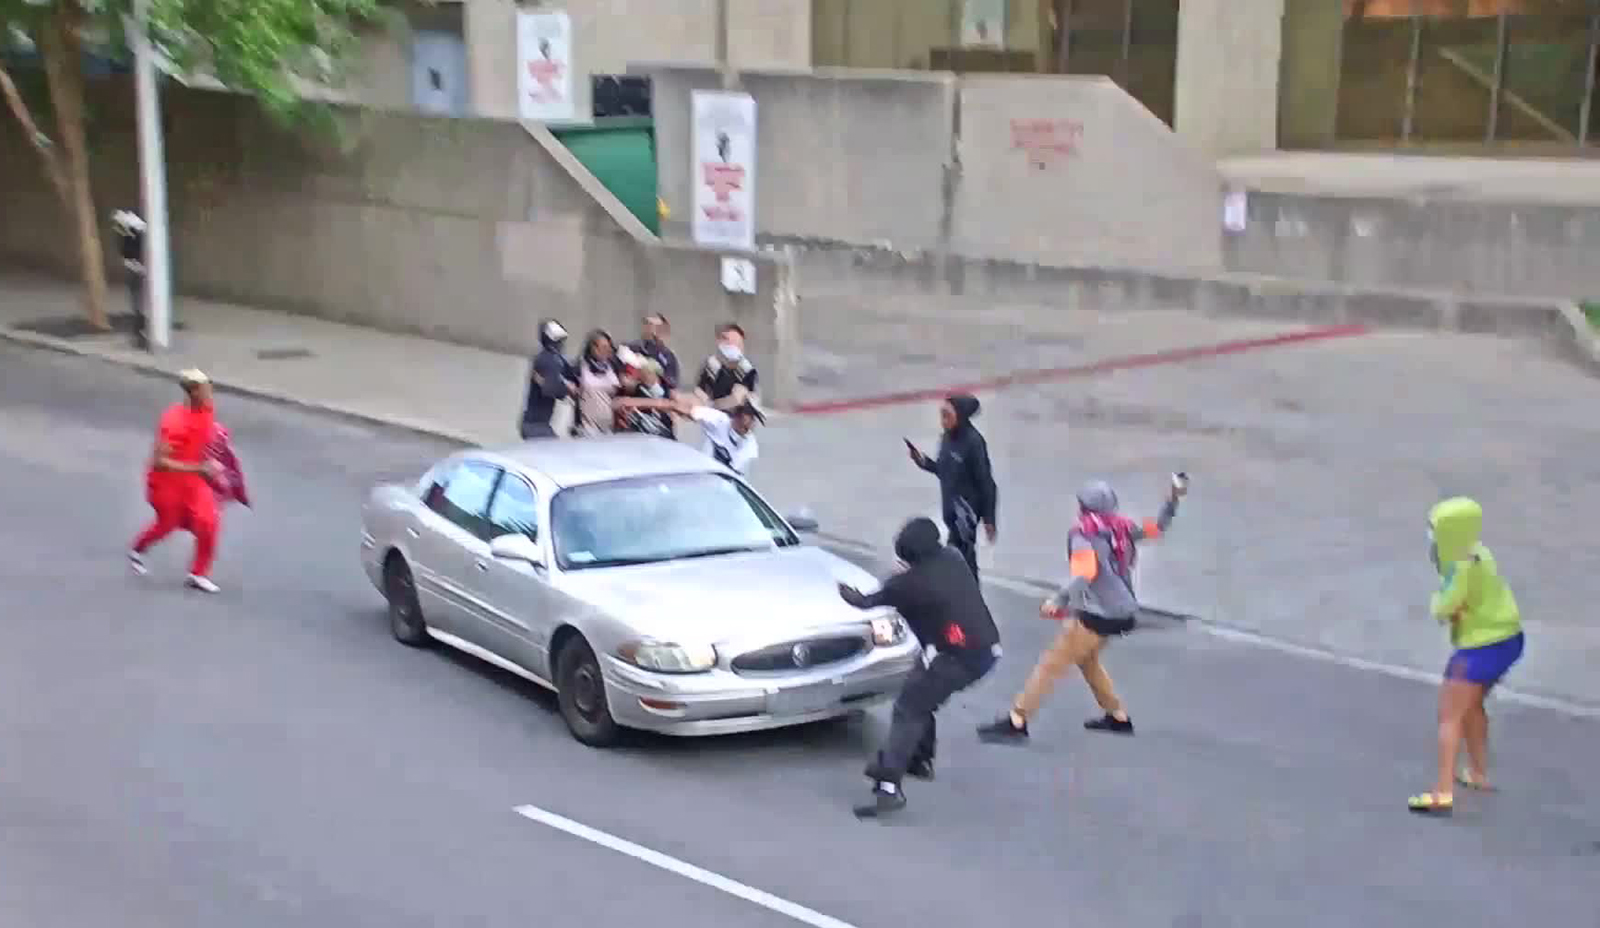 Protesters engage with a car in Louisville, Kentucky.